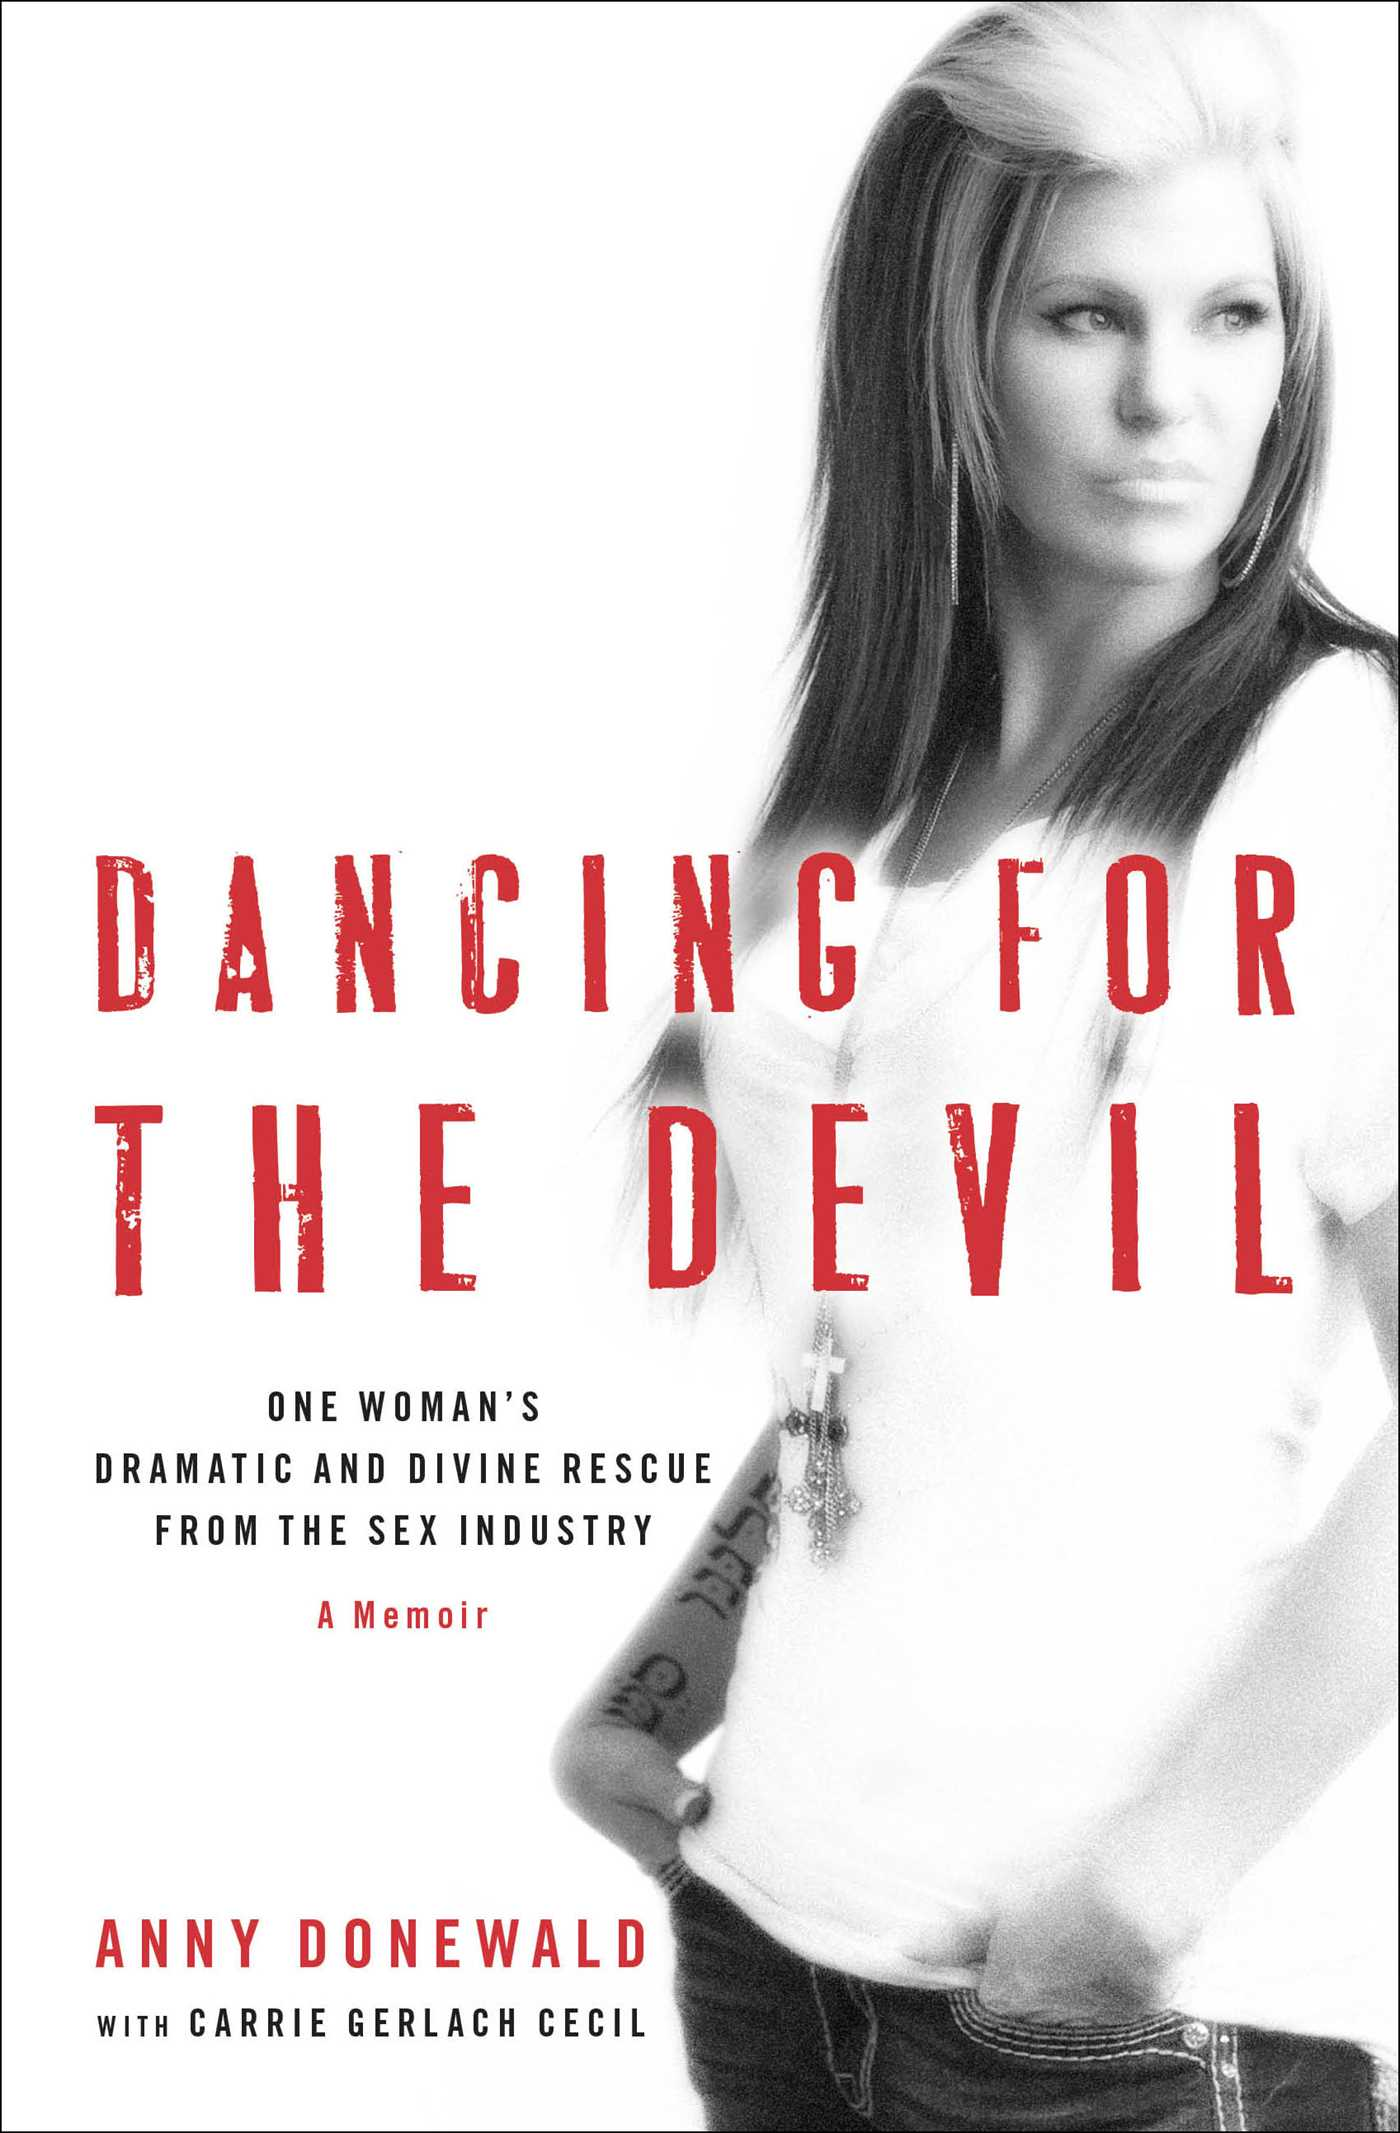 Dancing-for-the-devil-9781476759081_hr